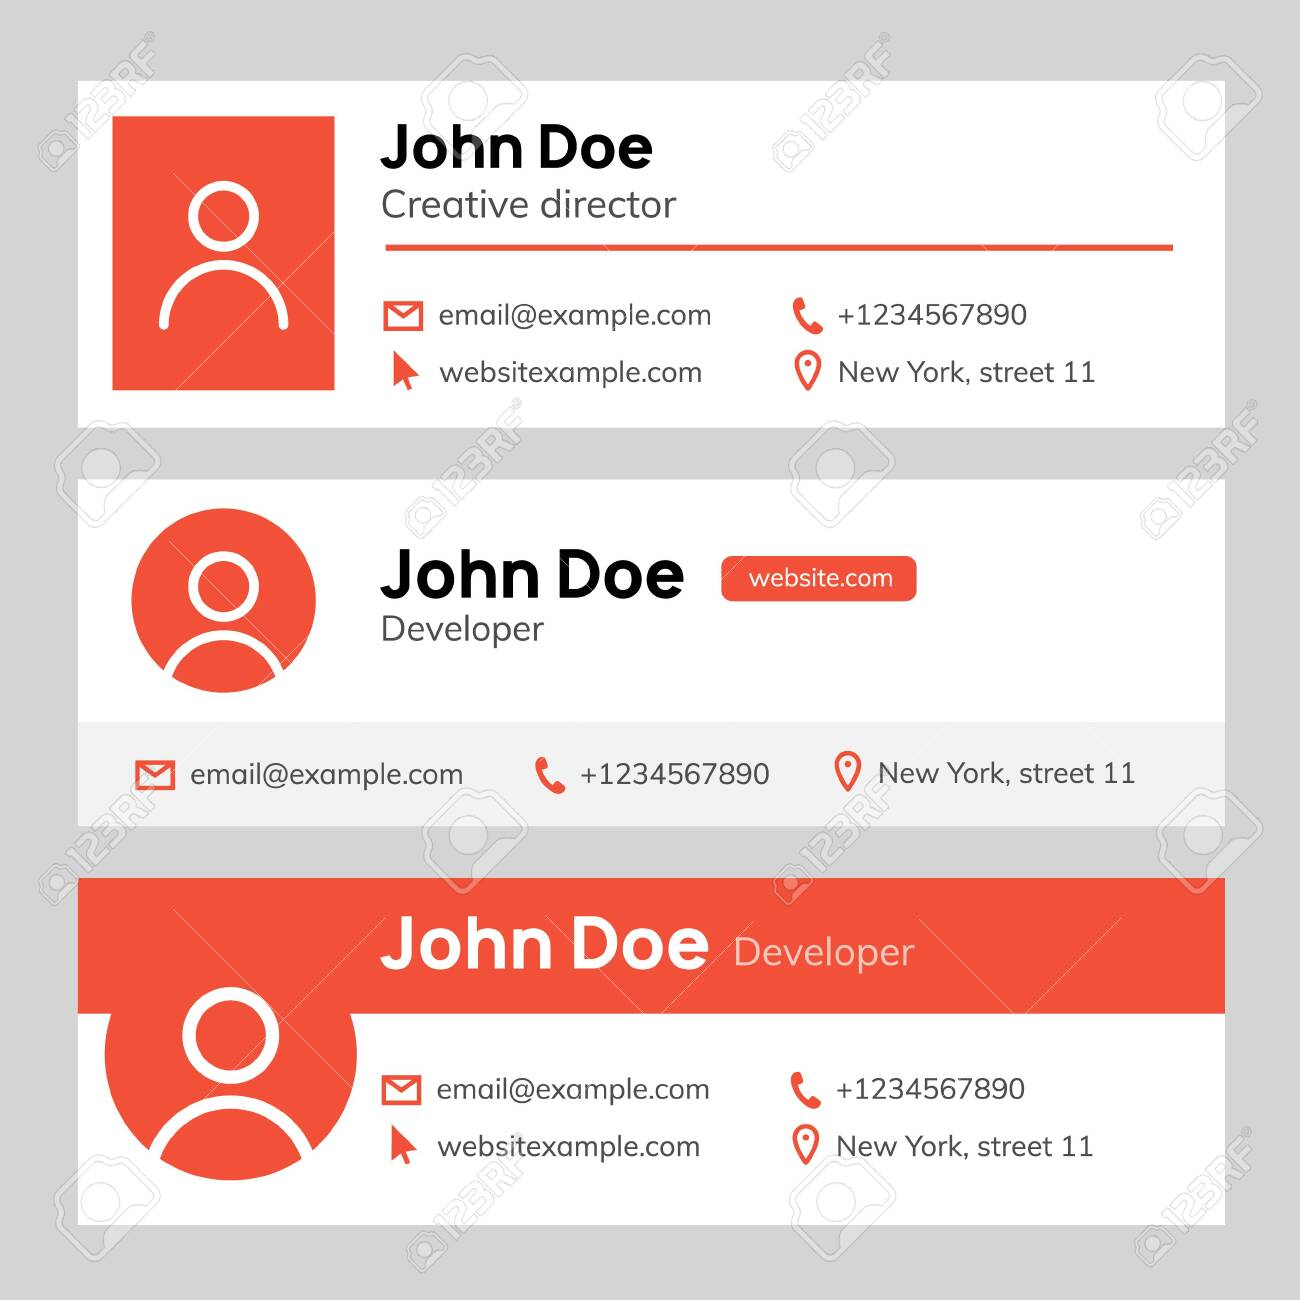 Email Signature Template Design Corporate Mail Business Email Royalty Free Cliparts Vectors And Stock Illustration Image 143126607